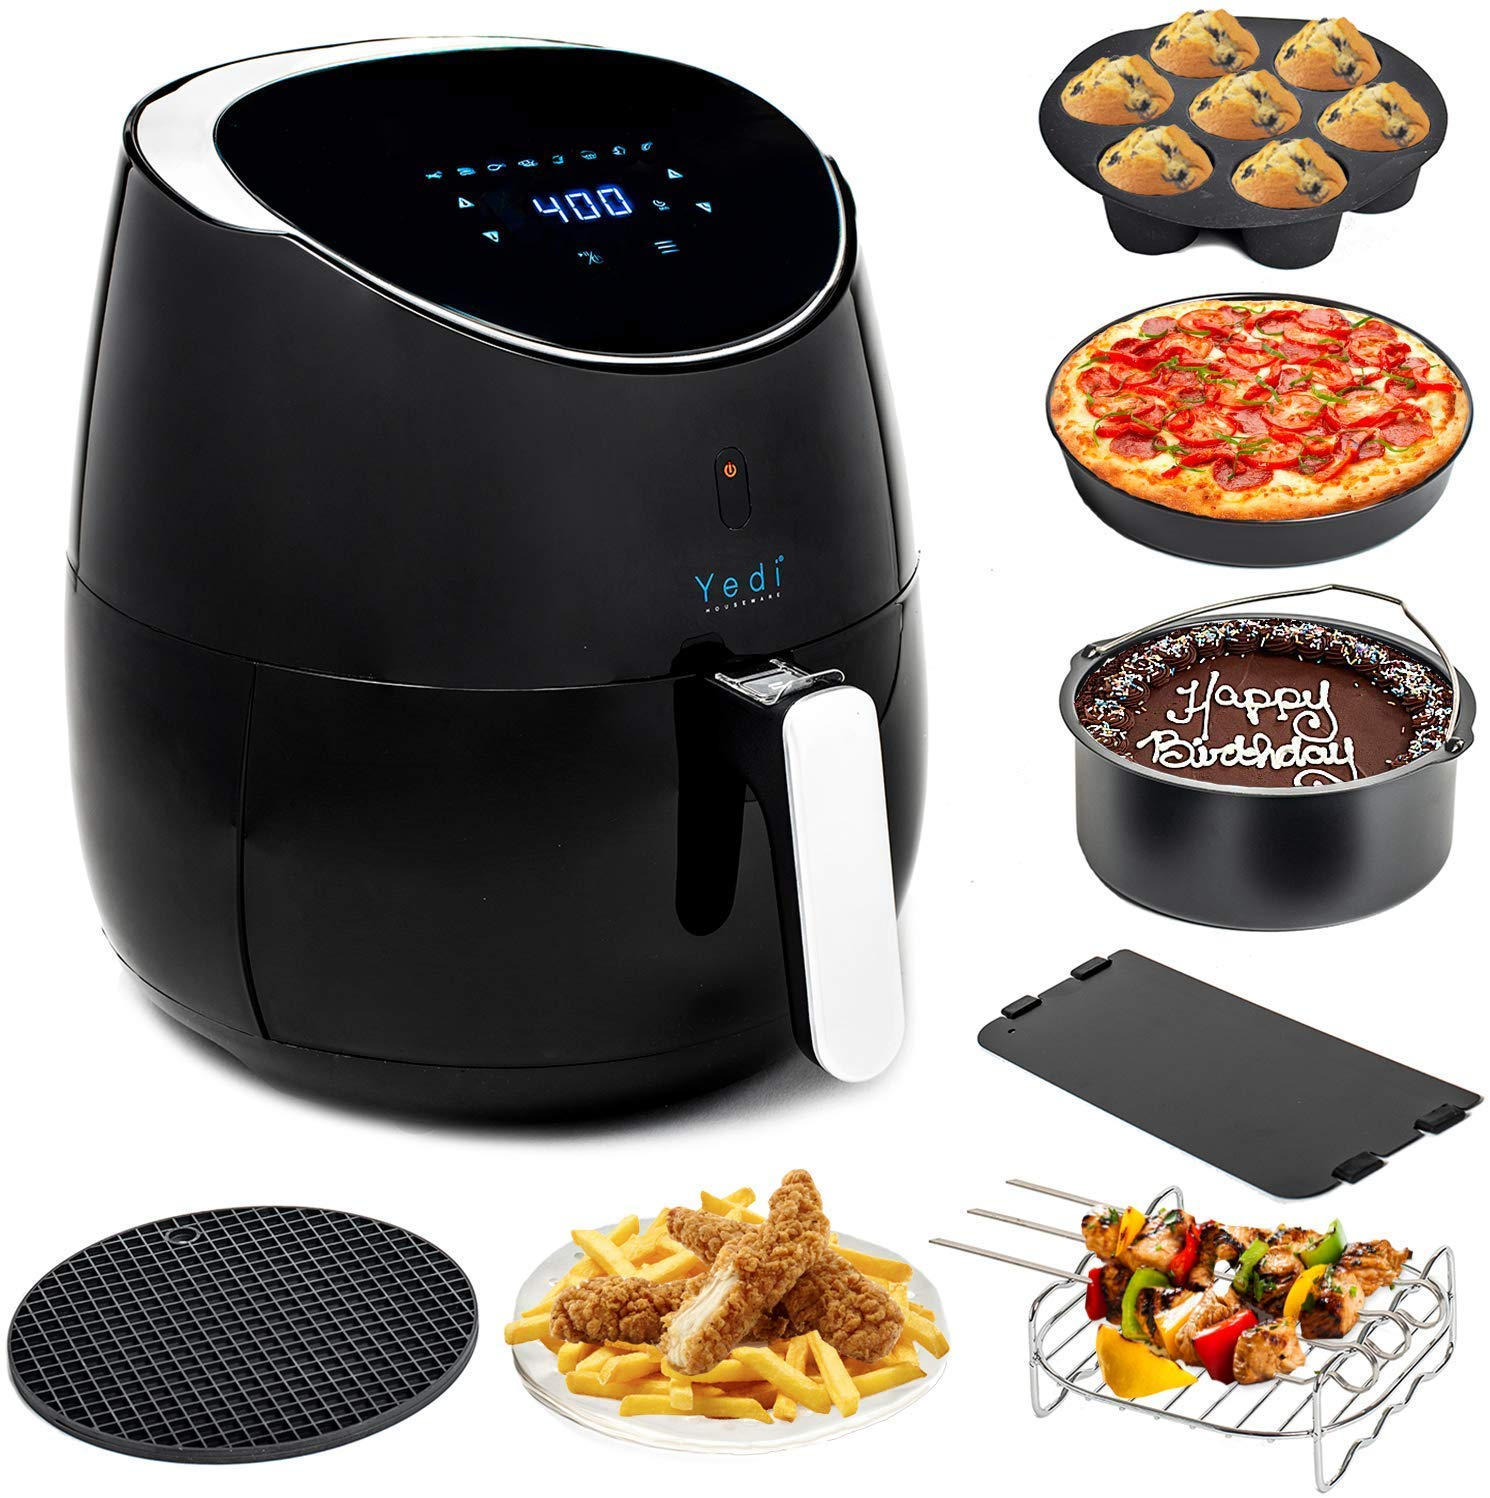 Total Package Air Fryer, 8-in-1 Digital Screen, with Endless Recipes, and Deluxe Accessory Kit by Yedi Houseware (5.8 QT) by YEDI HOUSEWARE